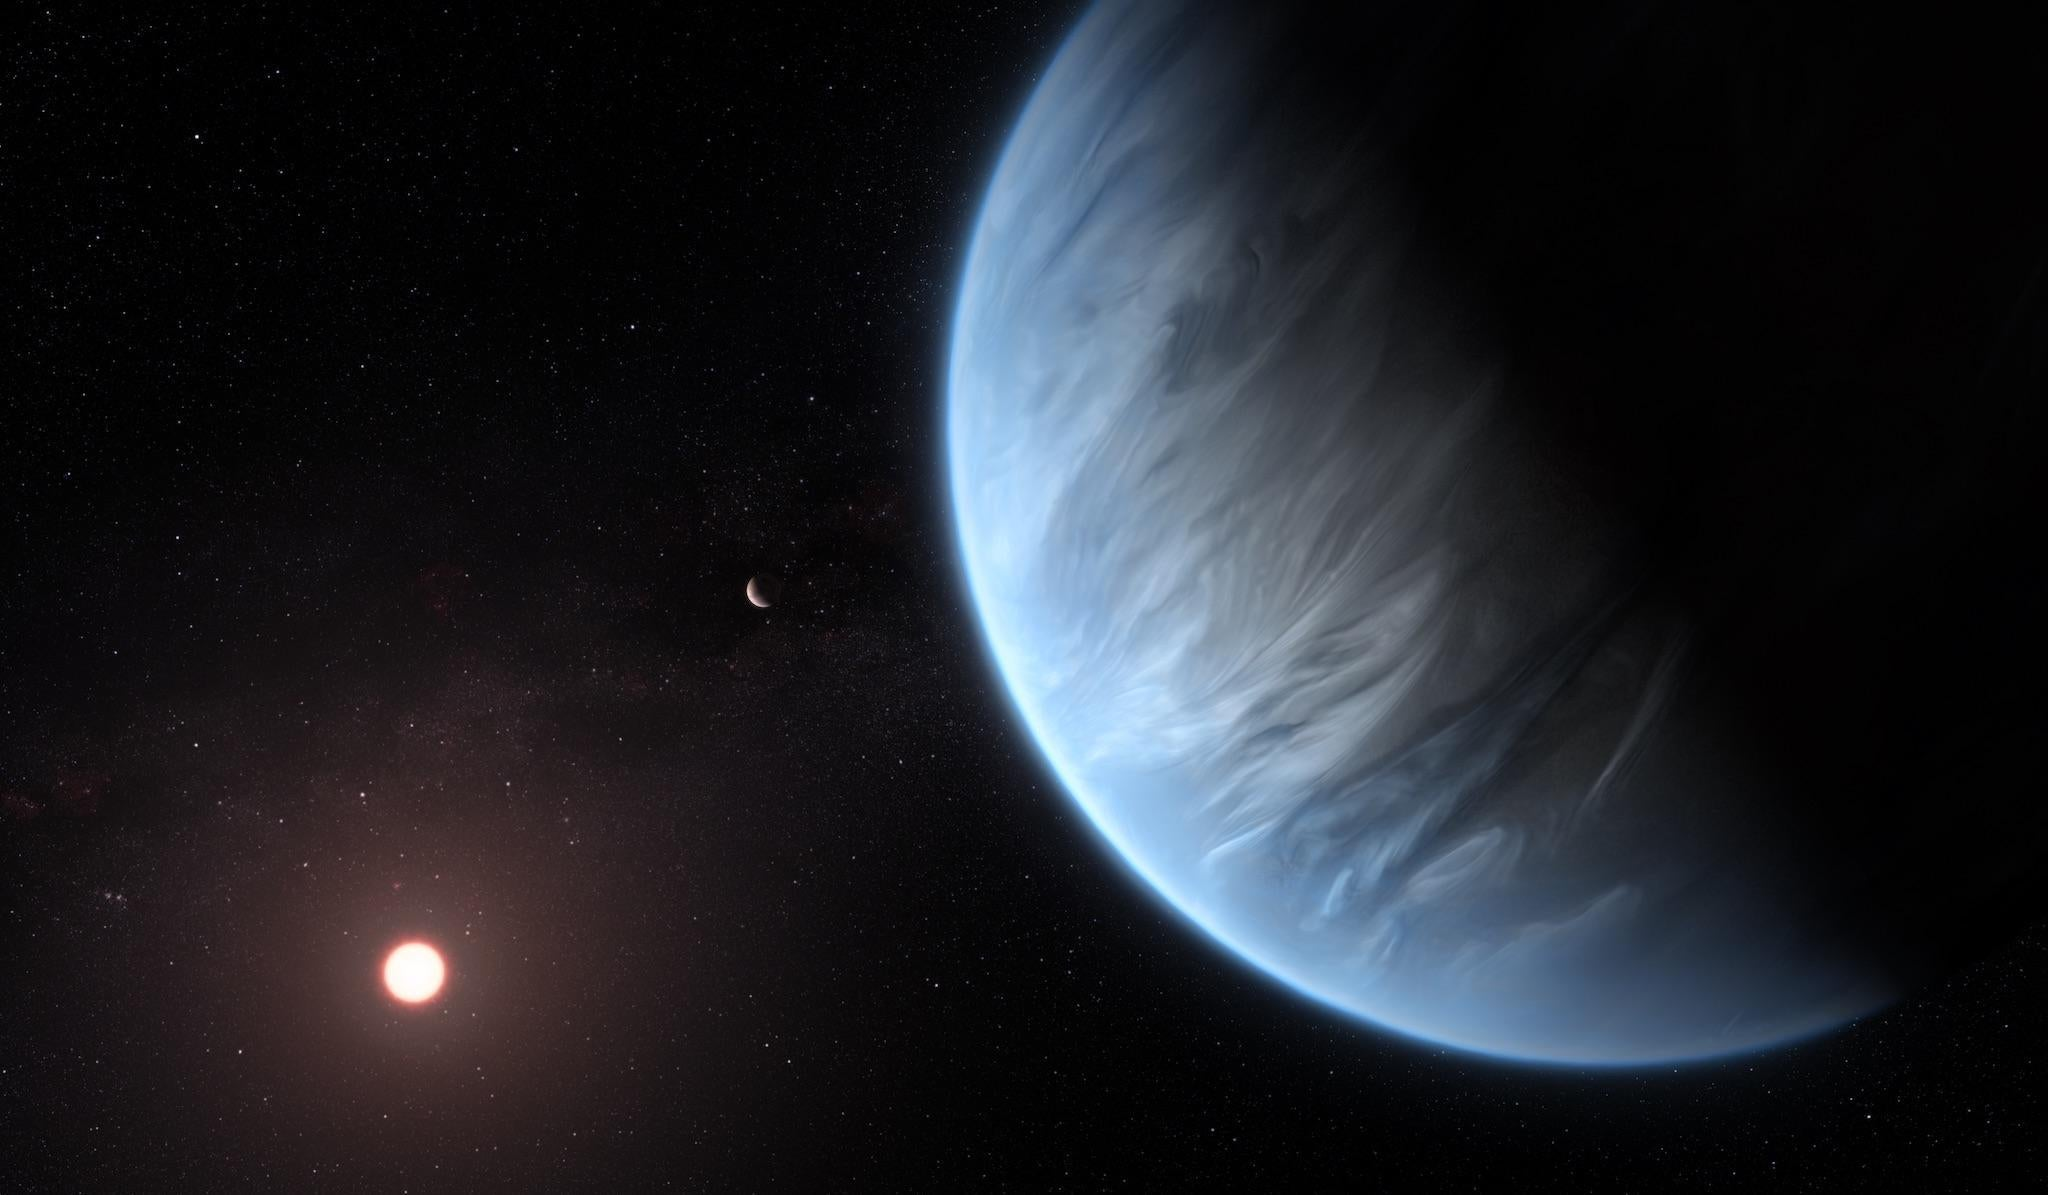 Water is found on habitable alien exoplanet for the first time, scientists say - The Independent